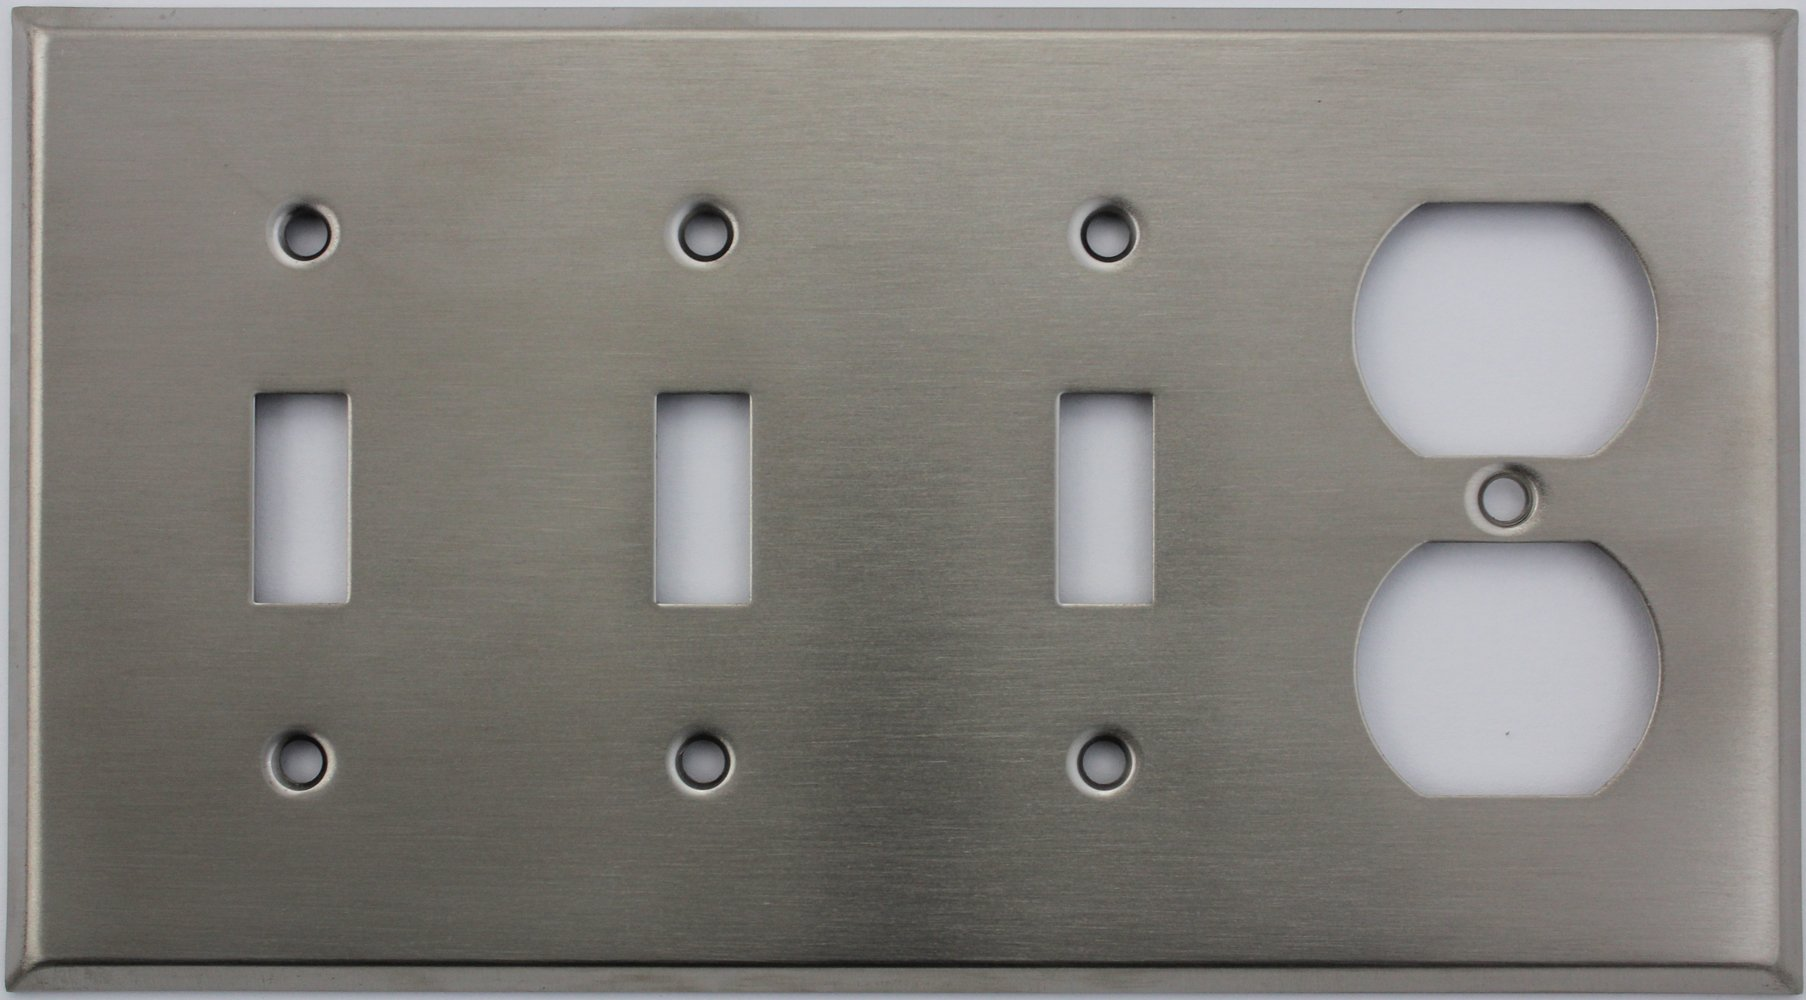 Brushed Satin Stainless Steel 4 Gang Wall Plate - 3 Toggle Switch 1 Duplex Outlet